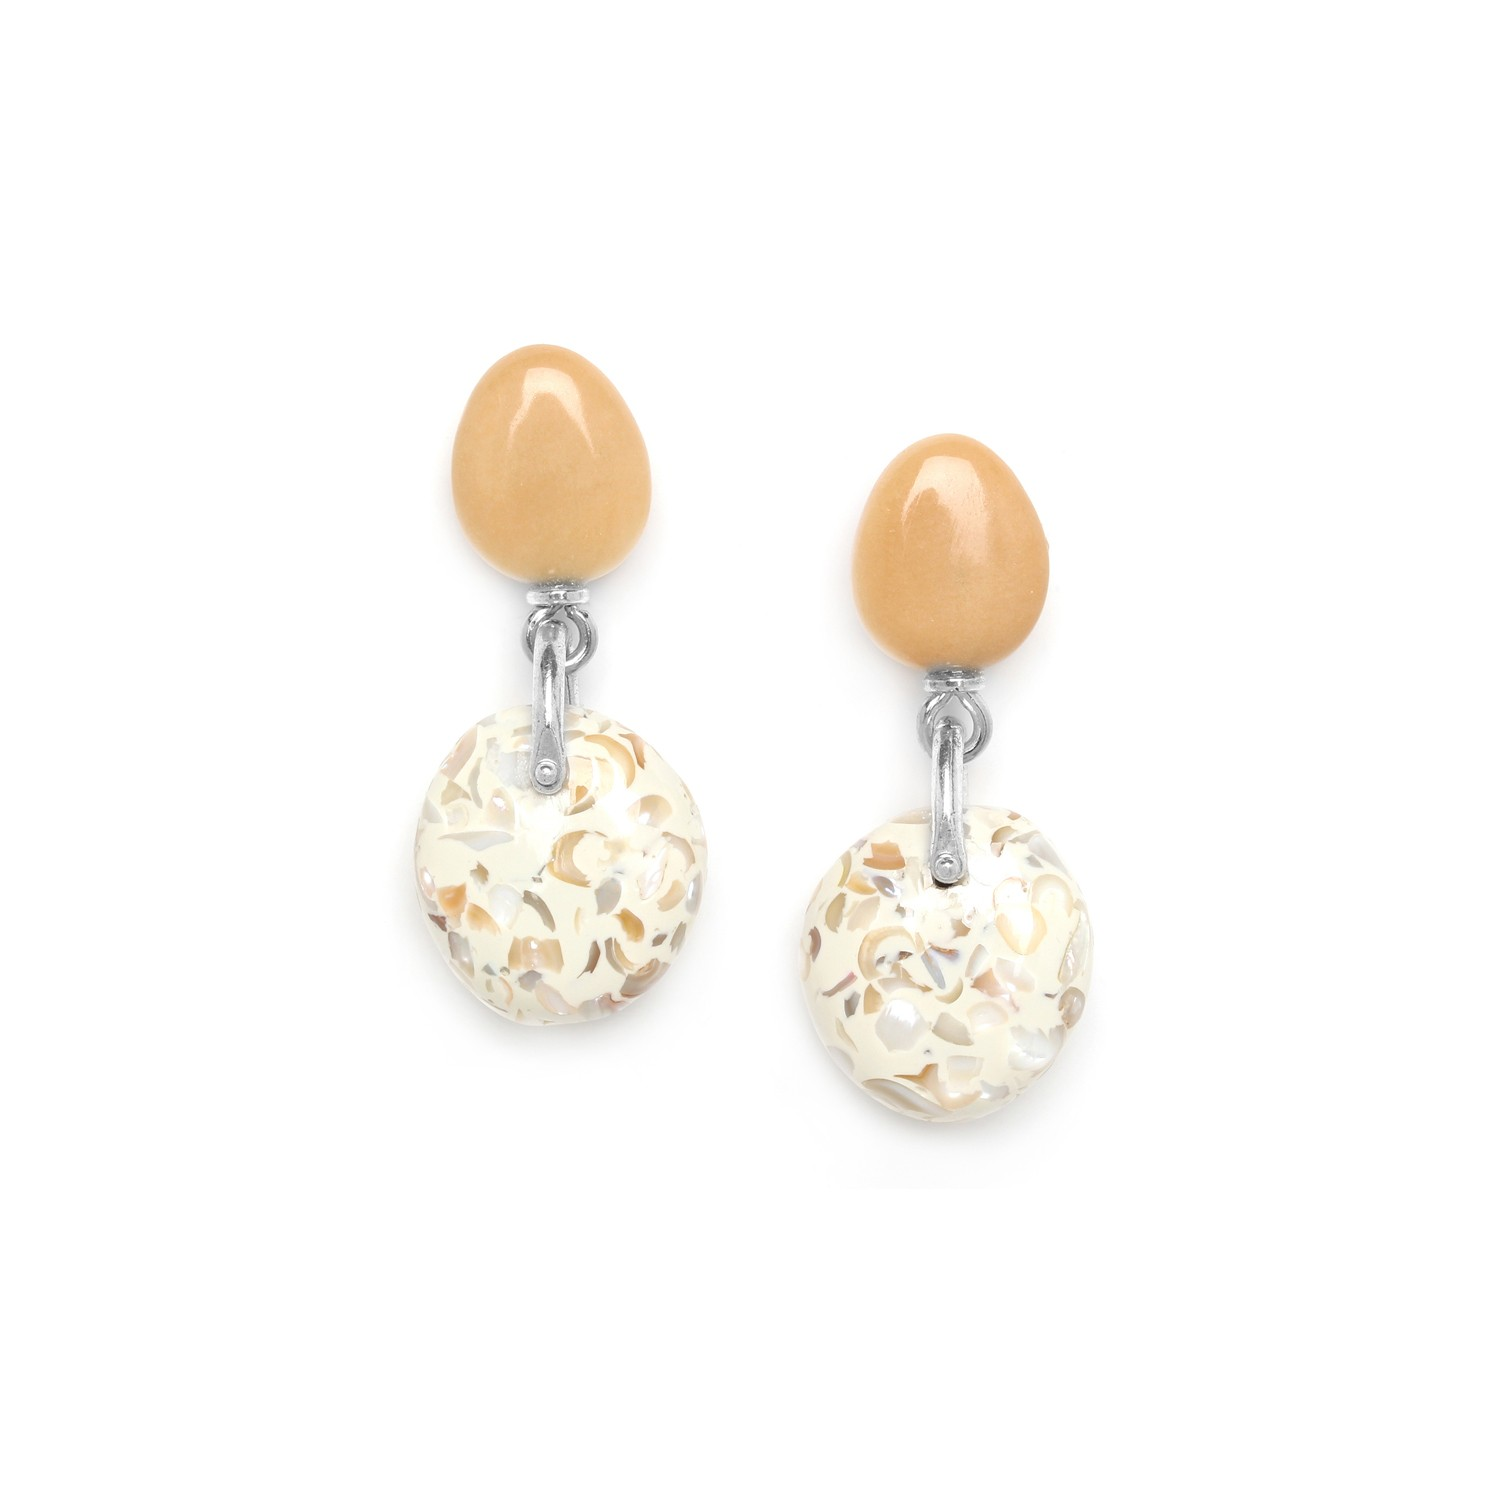 GALETS boucles d'oreilles terrazzo top tagua